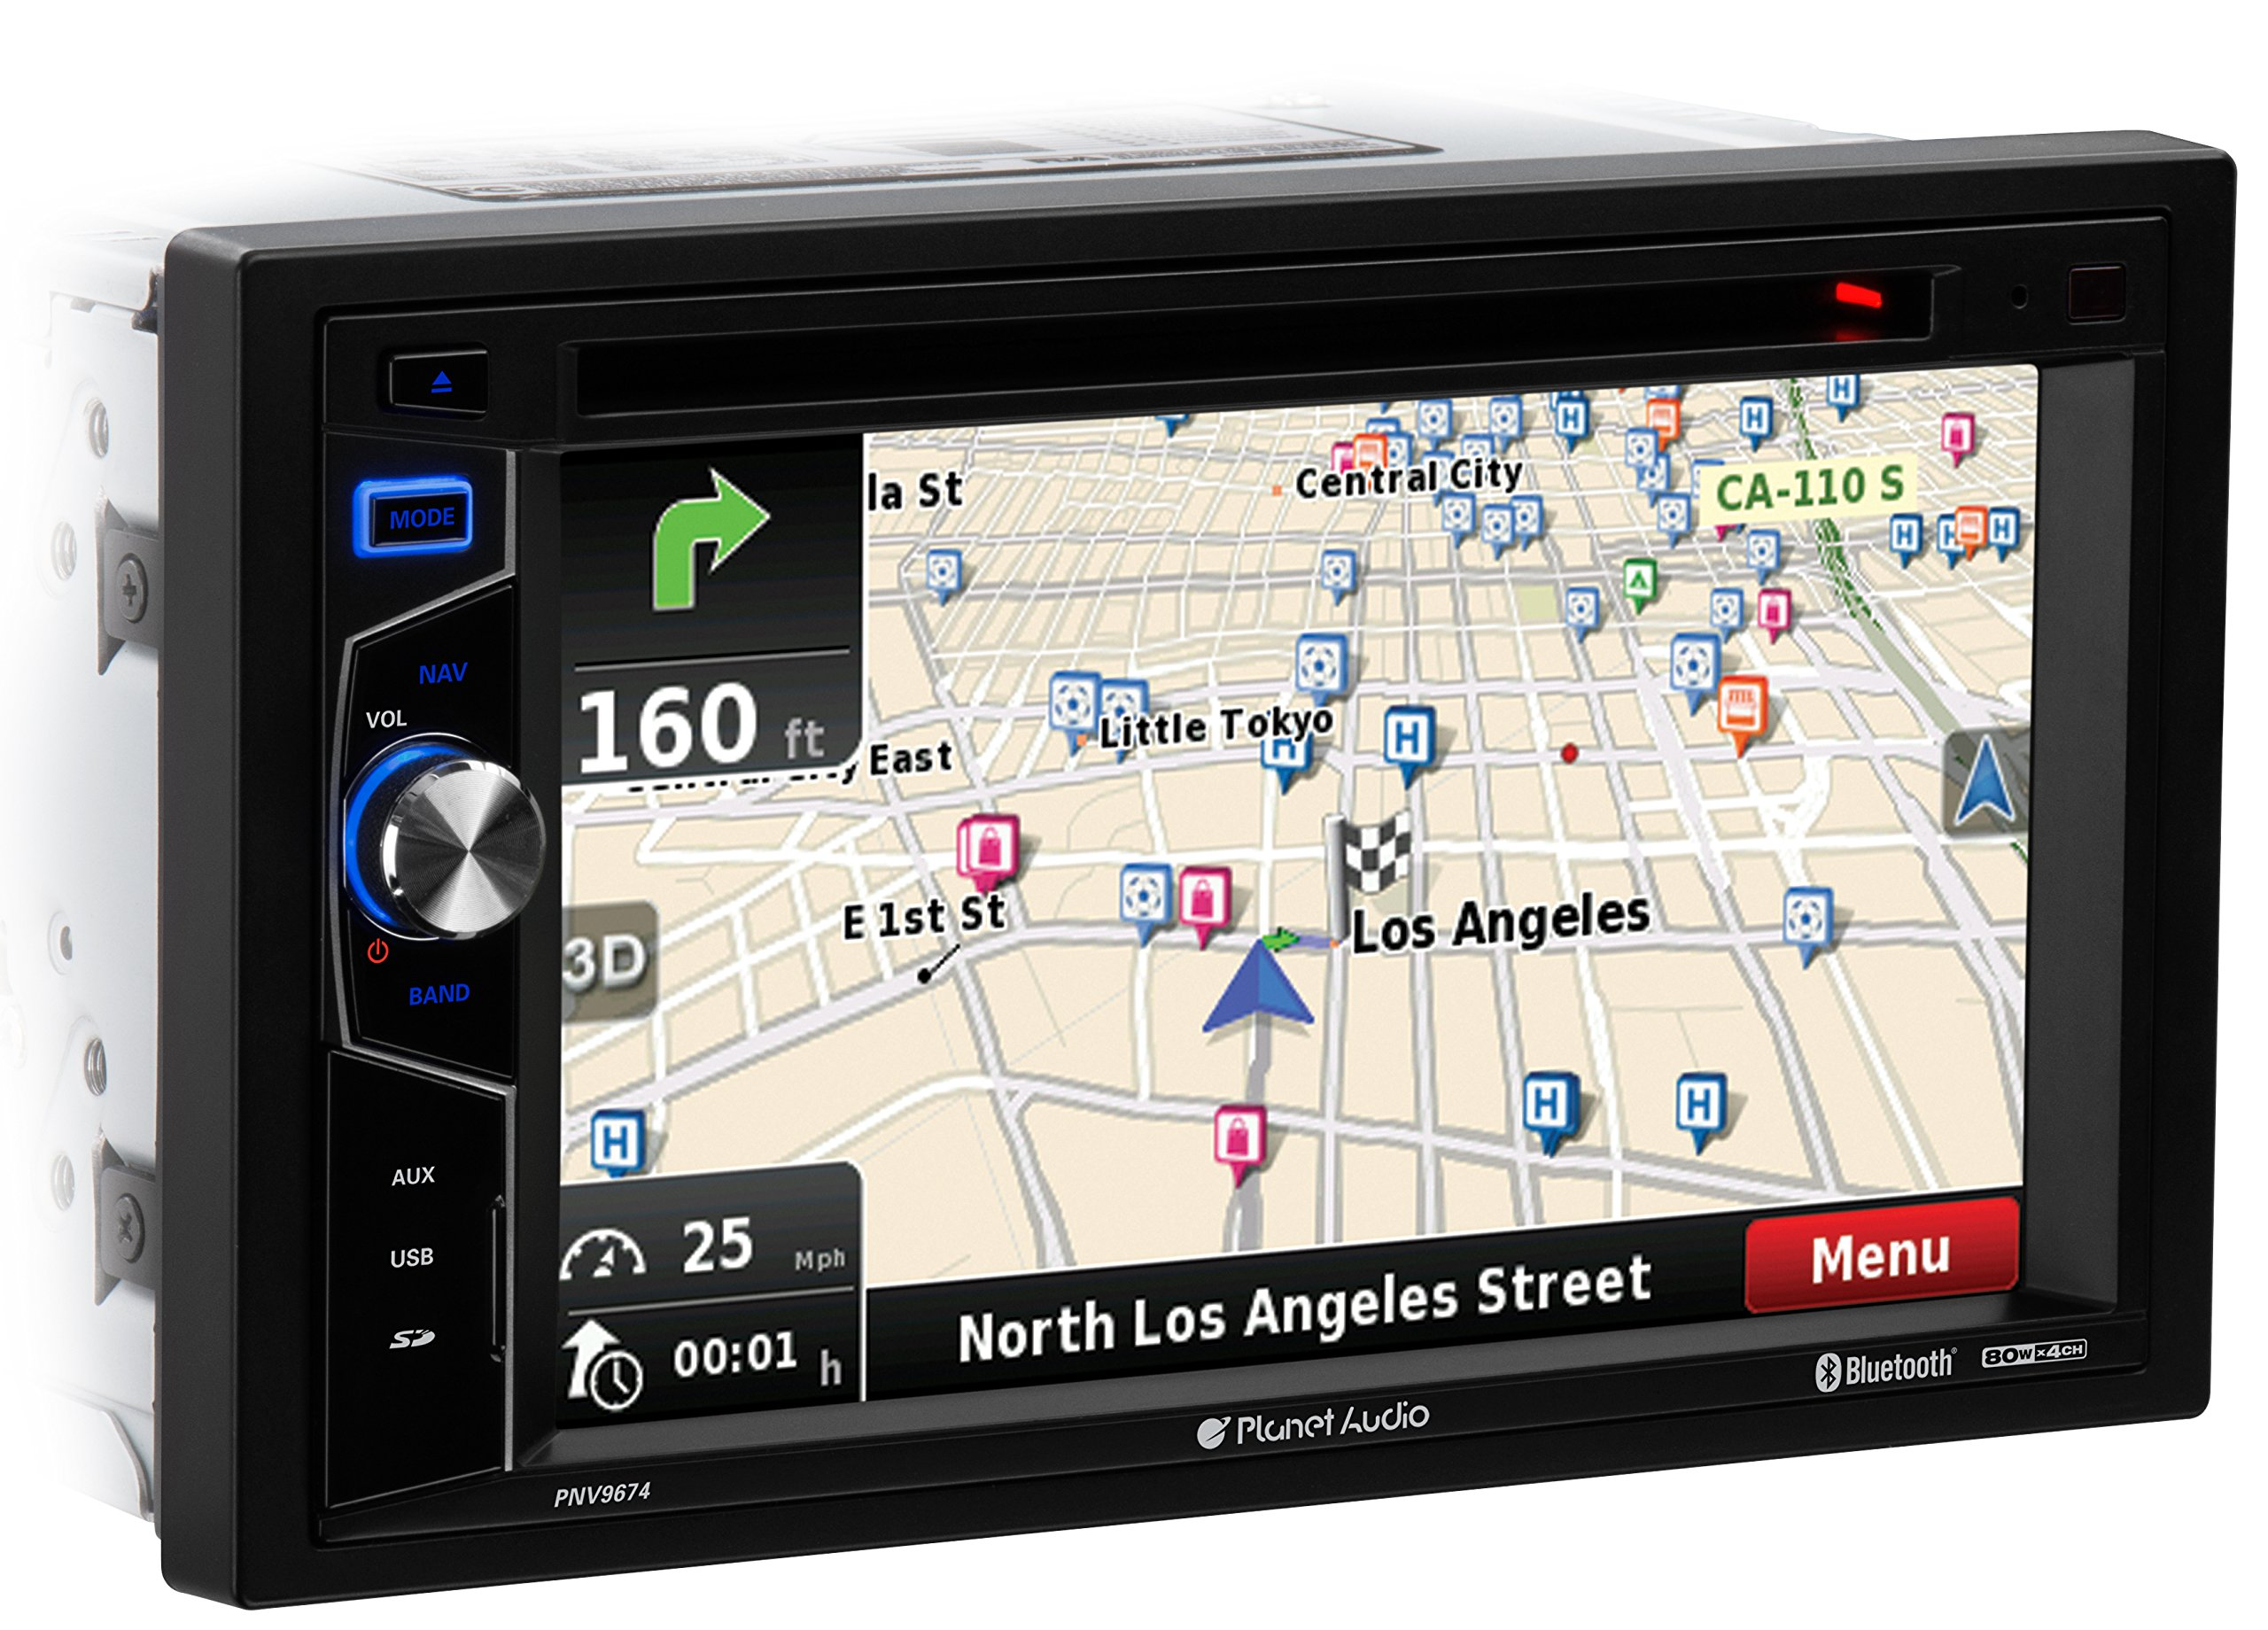 Planet Audio PNV9674 Double Din, Touchscreen, Bluetooth, Navigation, DVD/CD/MP3/USB/SD AM/FM Car Stereo, 6.2 Inch Digital LCD Monitor, Wireless Remote